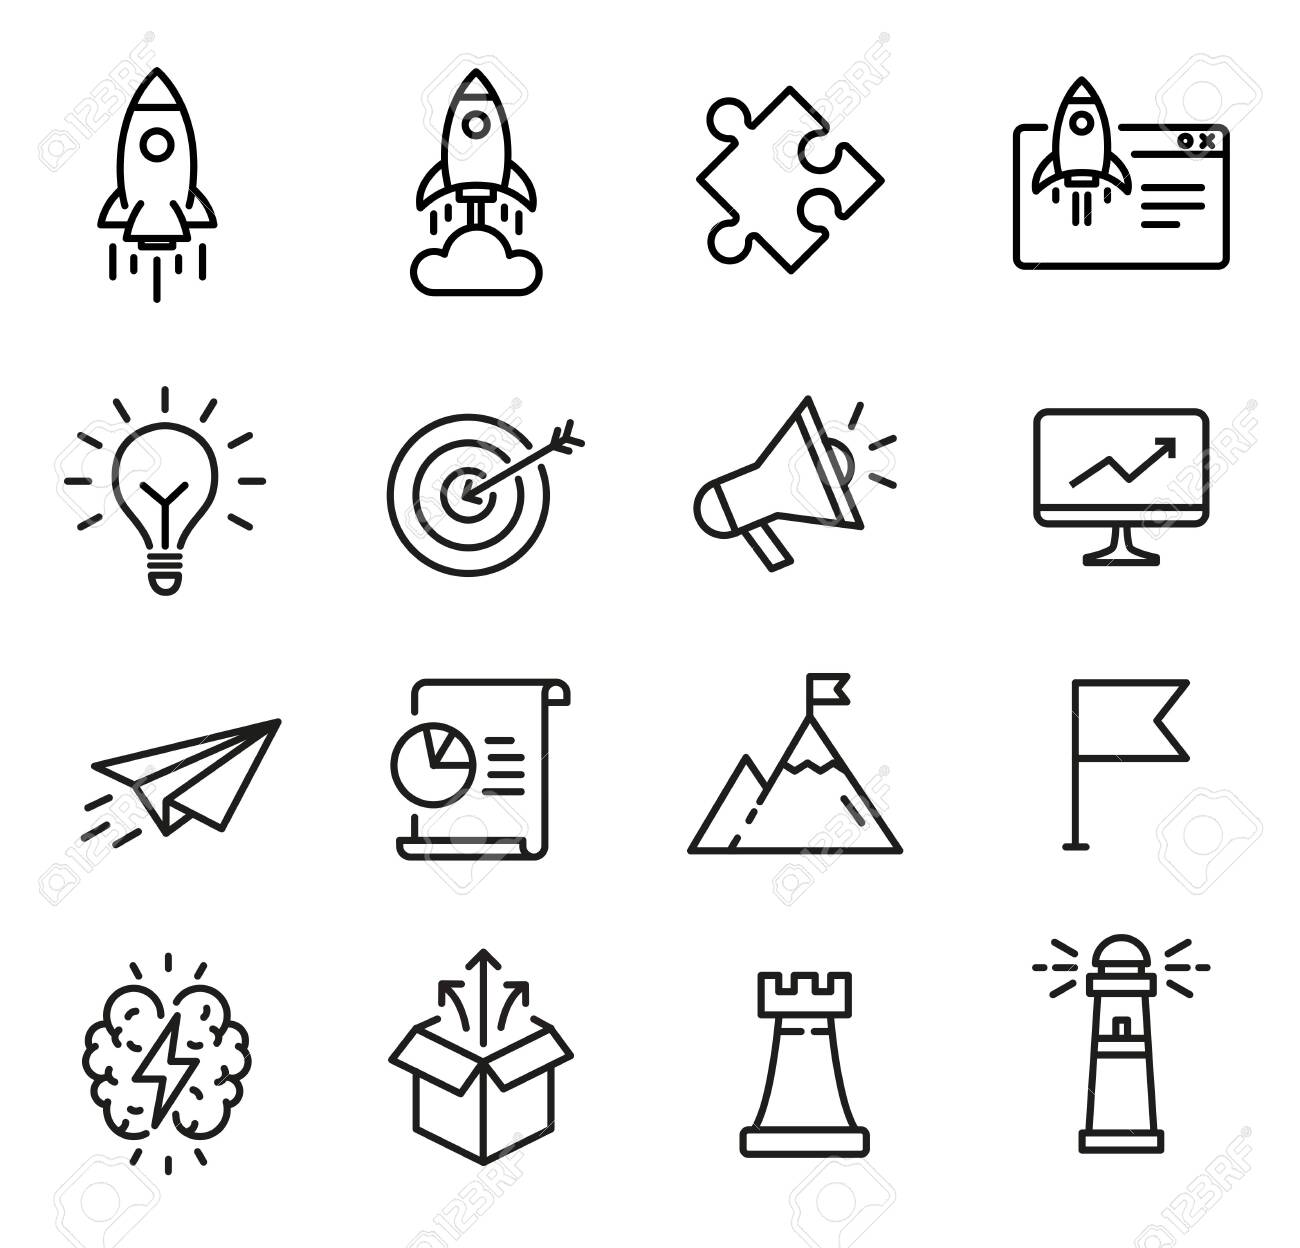 Startup icons, thin line design, can be used to illustrate startup launch, business opportunity, proces of creative thinking - 134167935